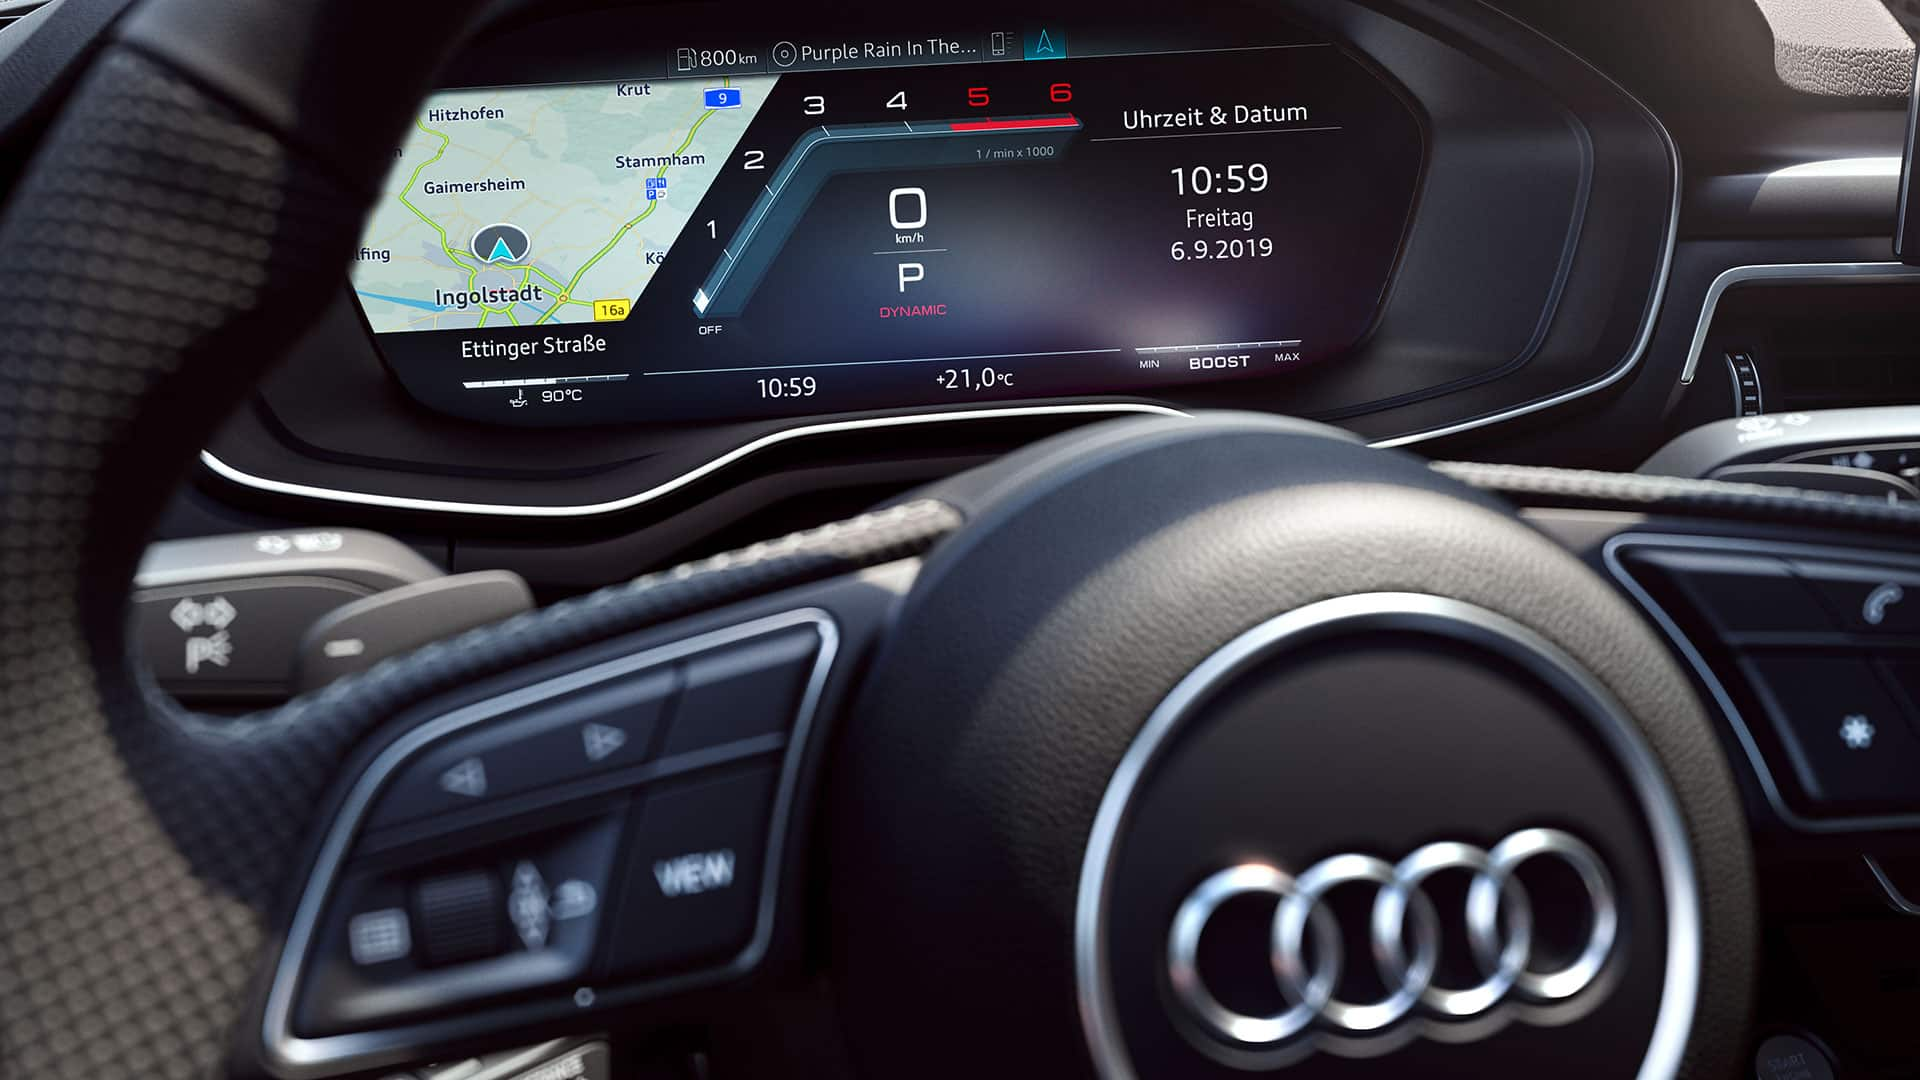 Audi virtual cockpit in the Audi S5 Sportback TDI